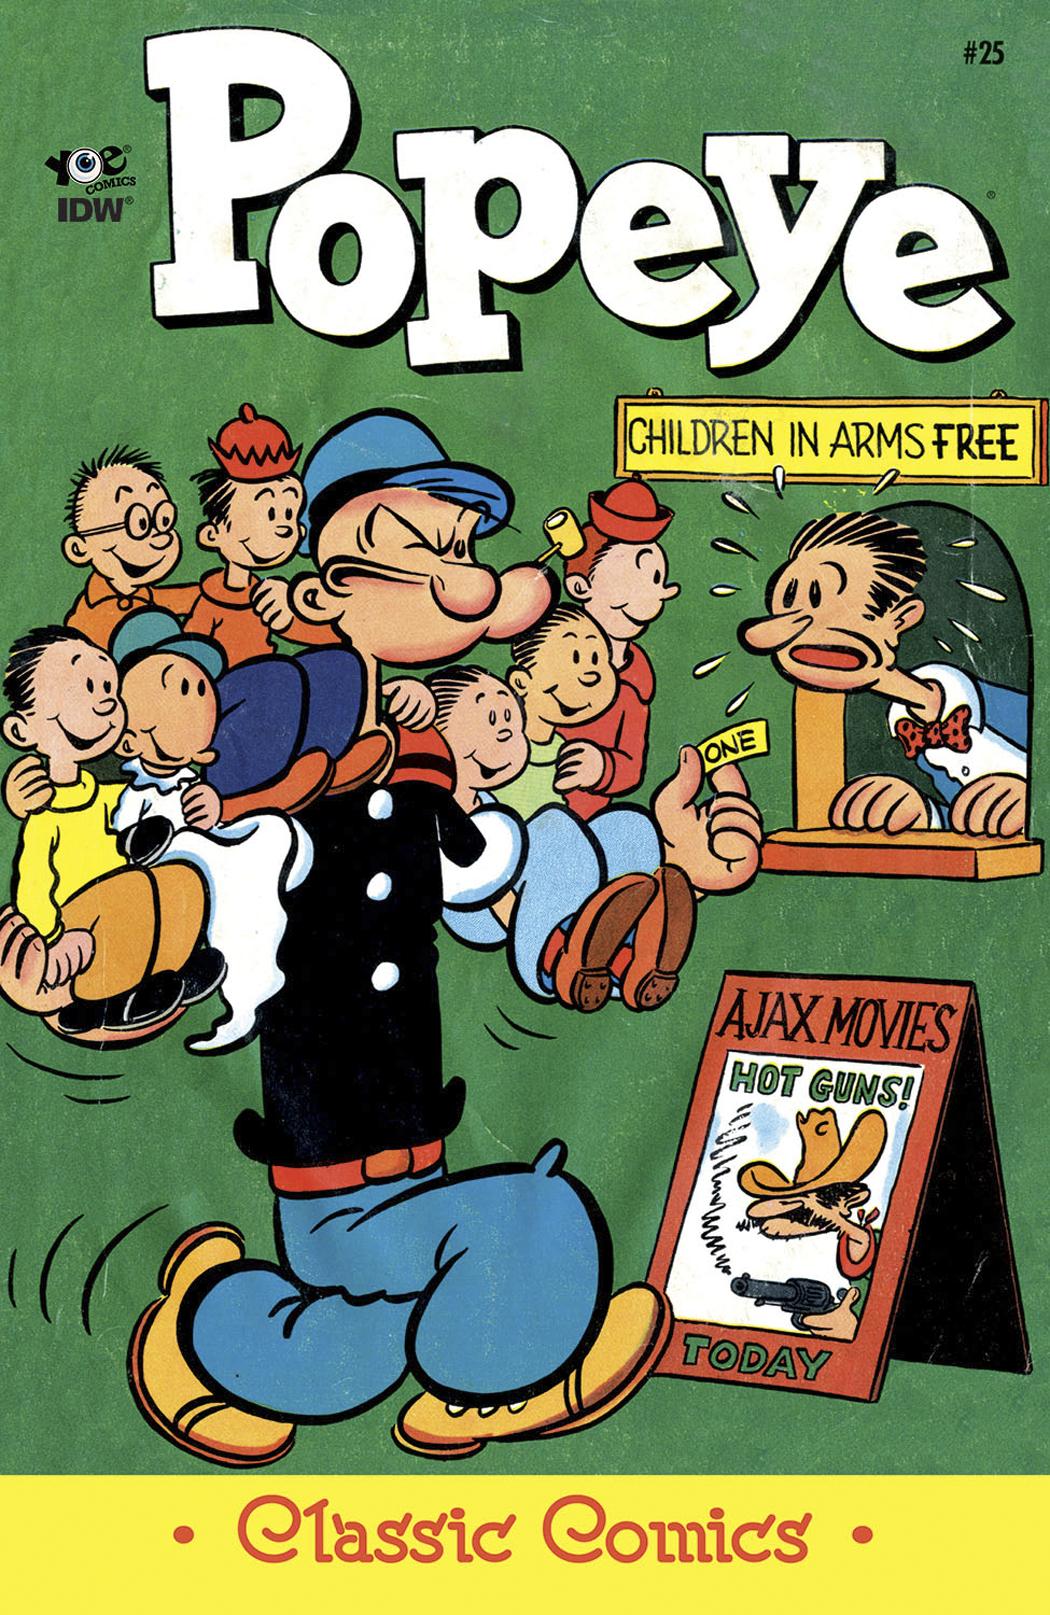 POPEYE CLASSICS ONGOING #25